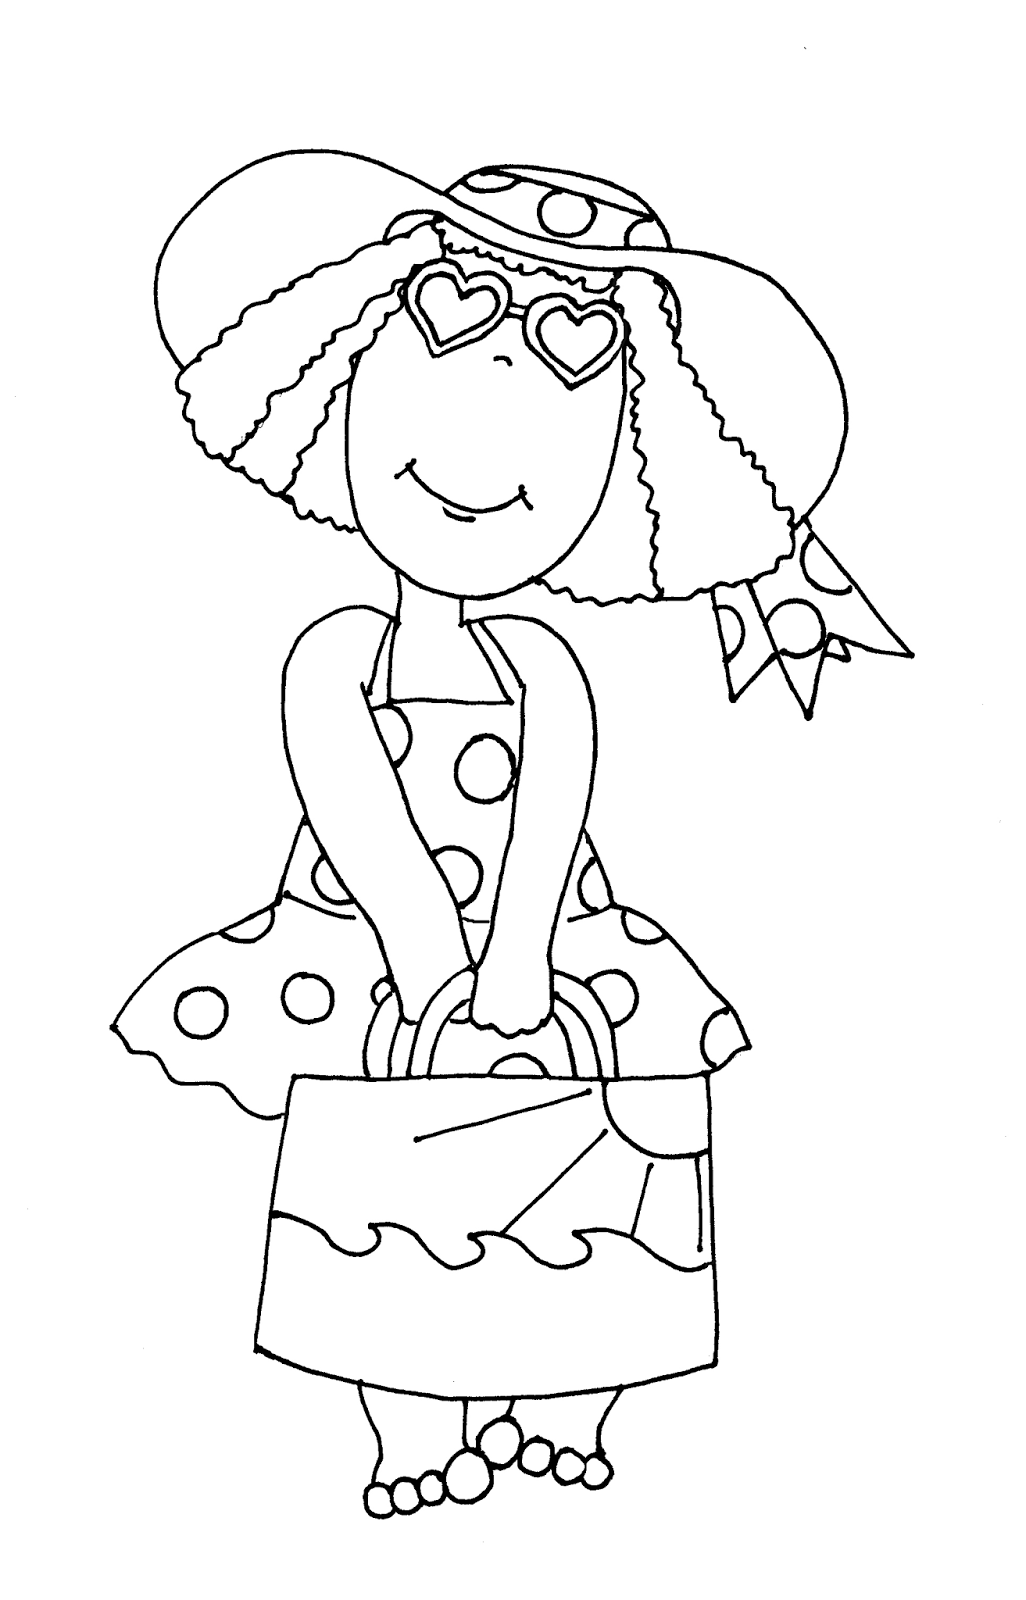 Free Dearie Dolls Digi Stamps: Day at the Beach Girl